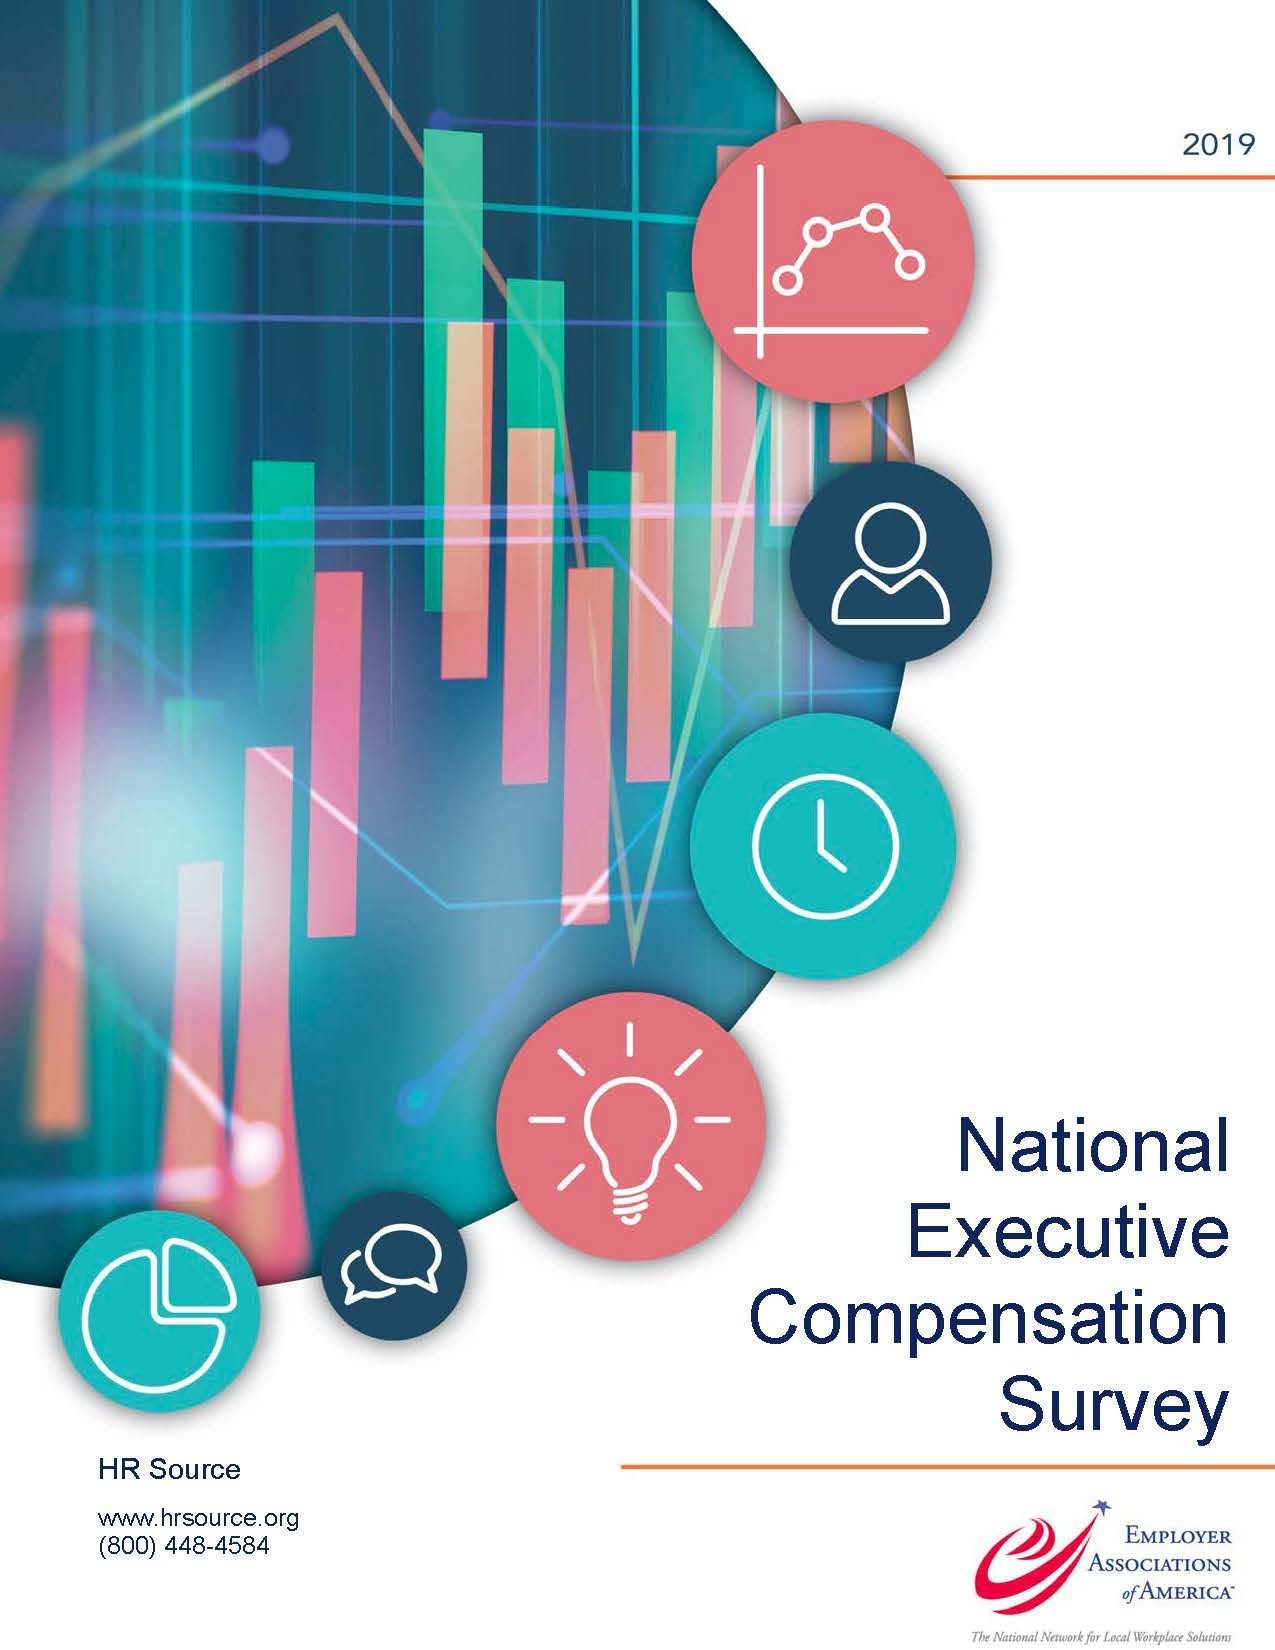 National Executive Compensation Survey 2019